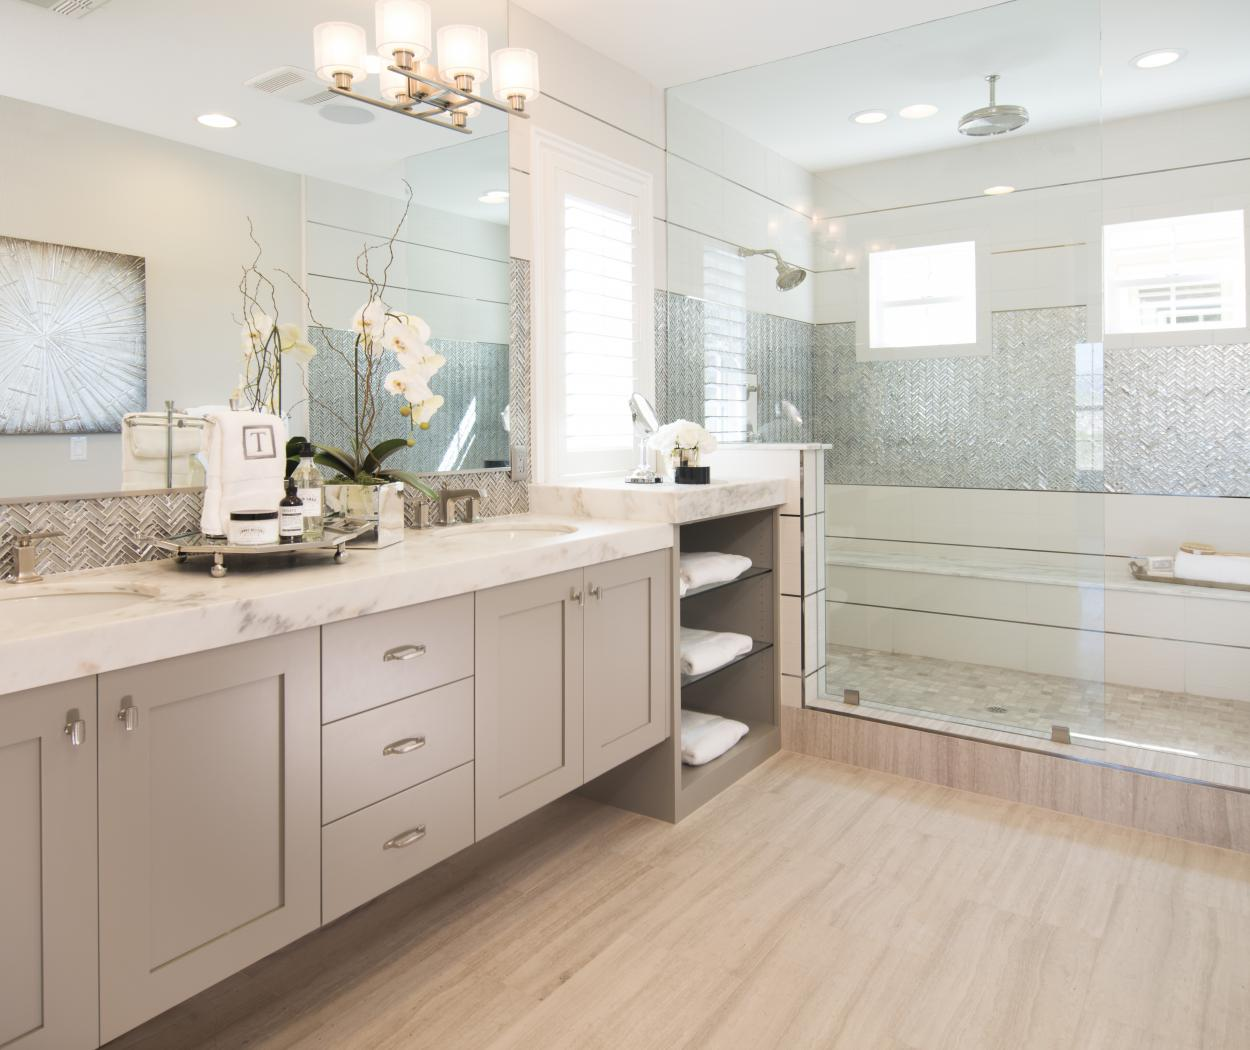 Beautiful Painted Beige, Shaker Style Master Bathroom with Glass Inset Shelves and Silver Knobs - Pulls